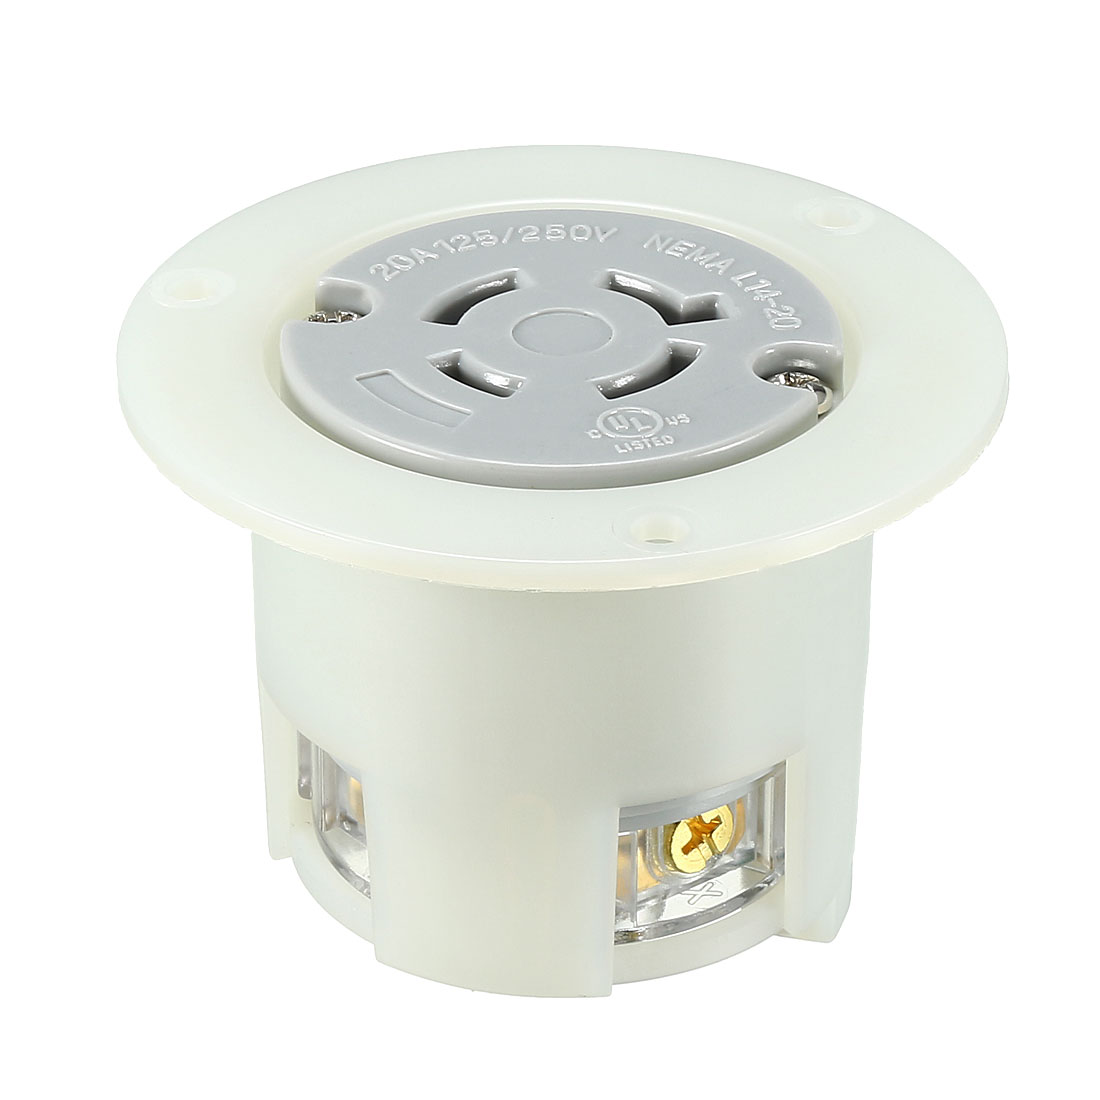 Locking Flanged Outlet NEMA L14-20C, 20A 125/250VAC, 3 Pole 4 Wire Grounding